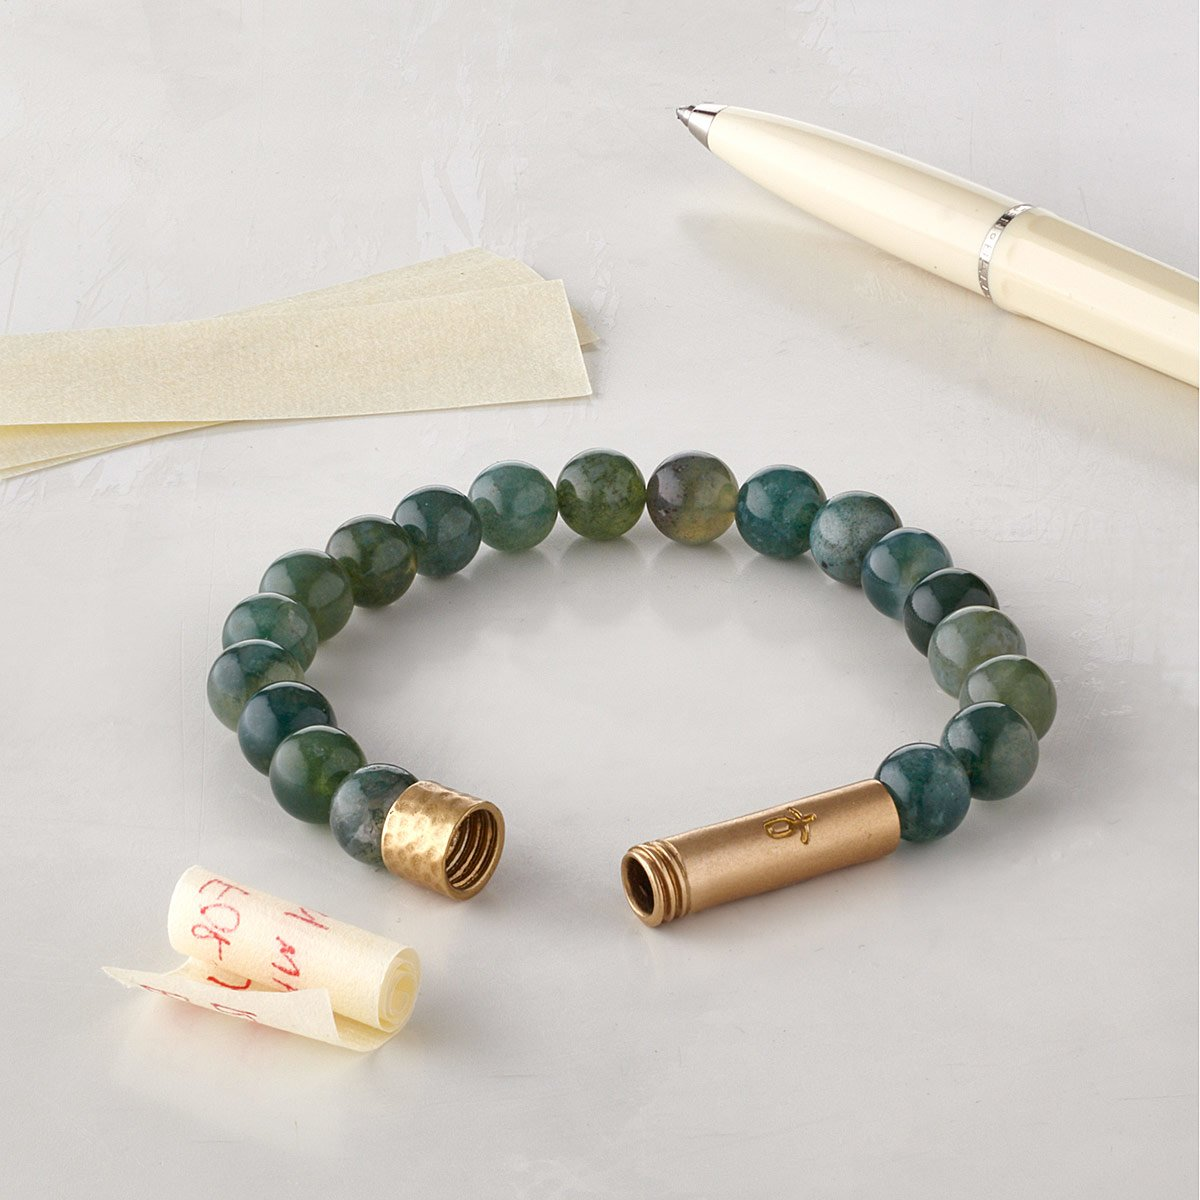 Wishbeads Intention Bracelet Inspirational Jewelry